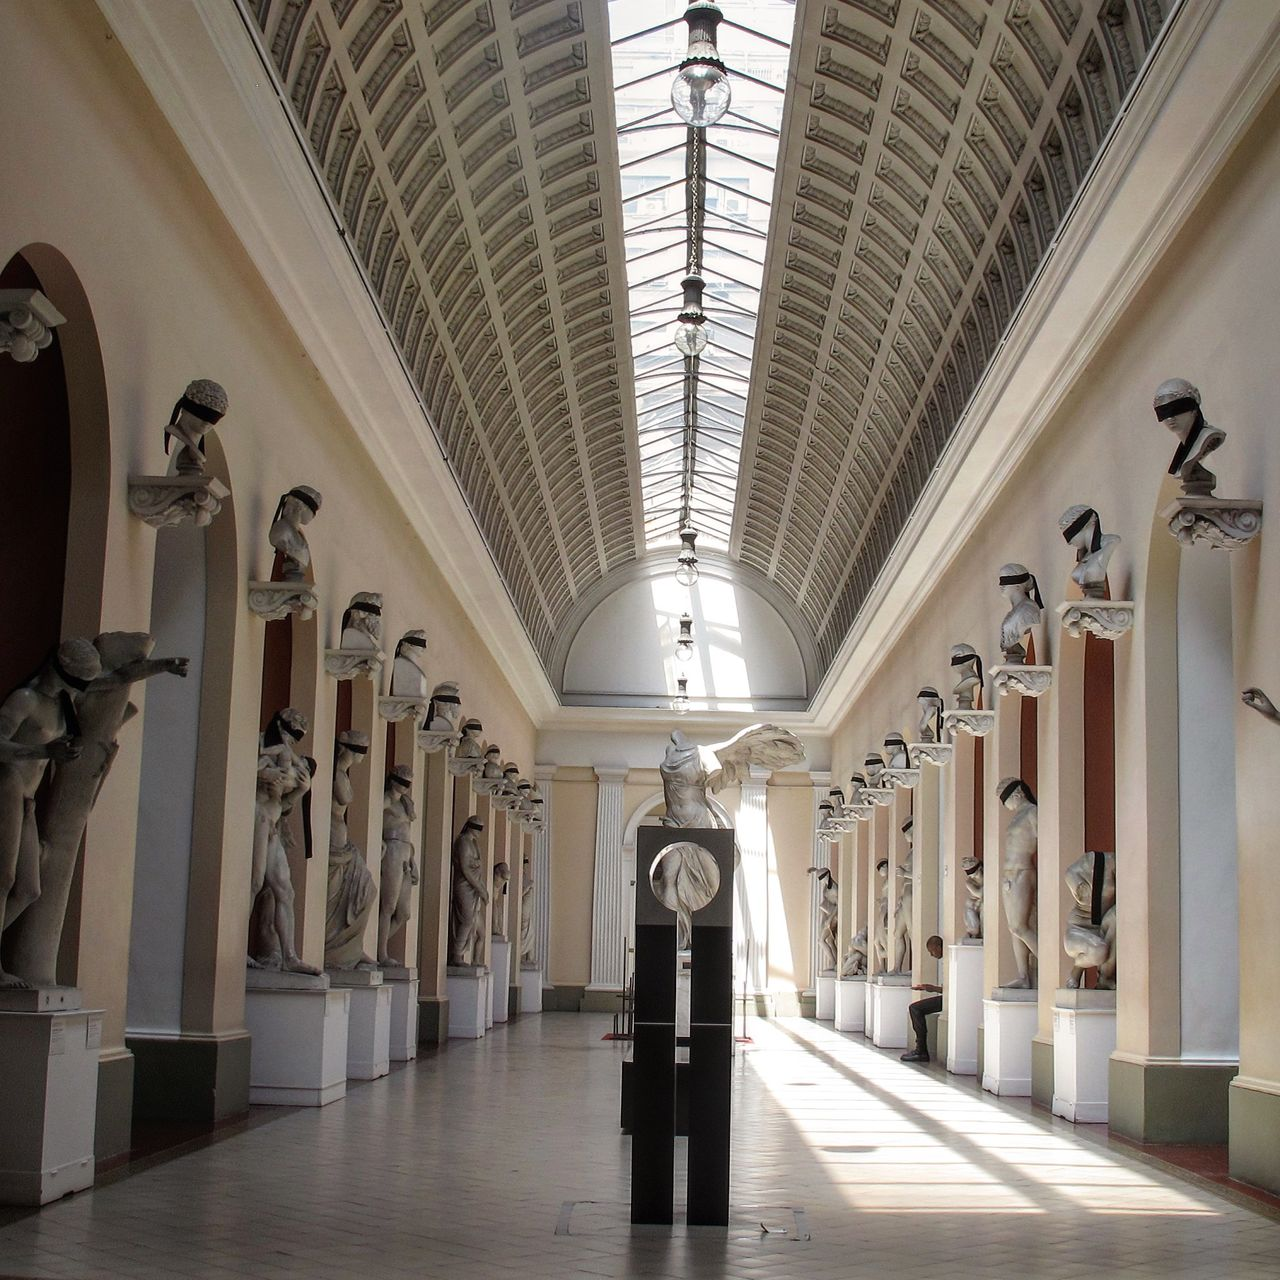 architectural column, indoors, arch, architecture, history, one person, full length, real people, museum, travel destinations, day, people